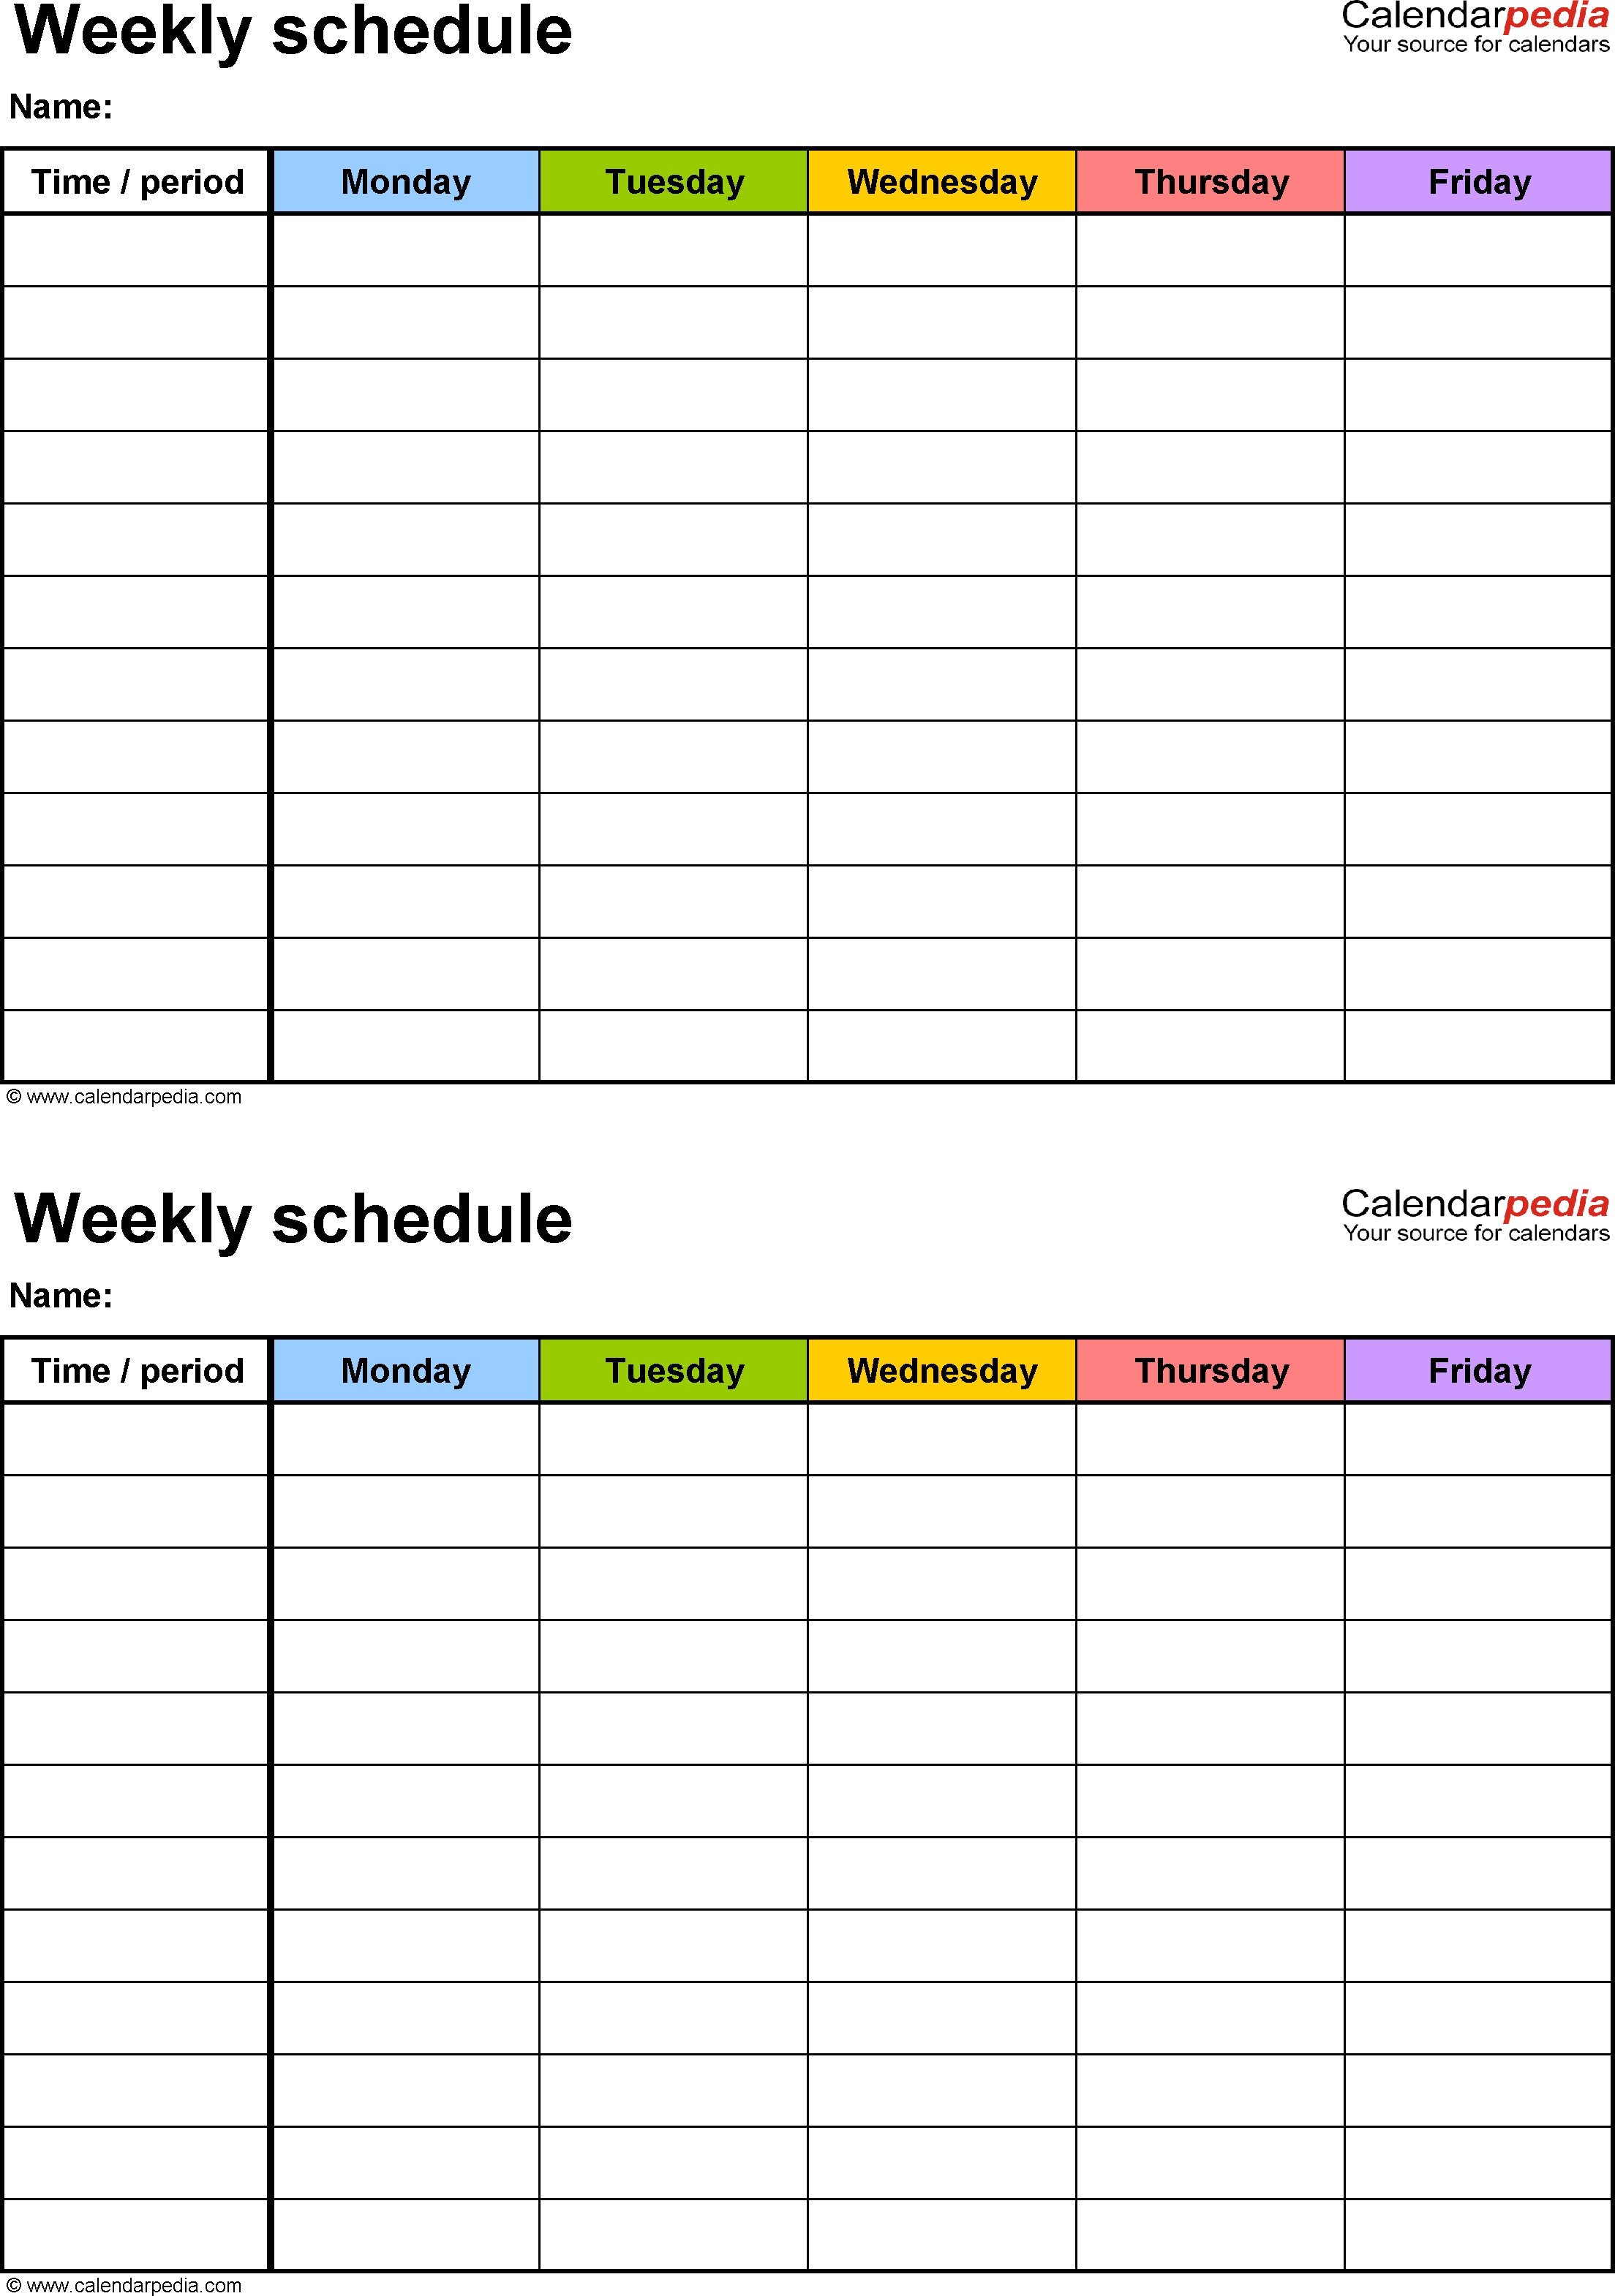 Free Weekly Schedule Templates For Word - 18 Templates within Printable 2 Week Calendar Template